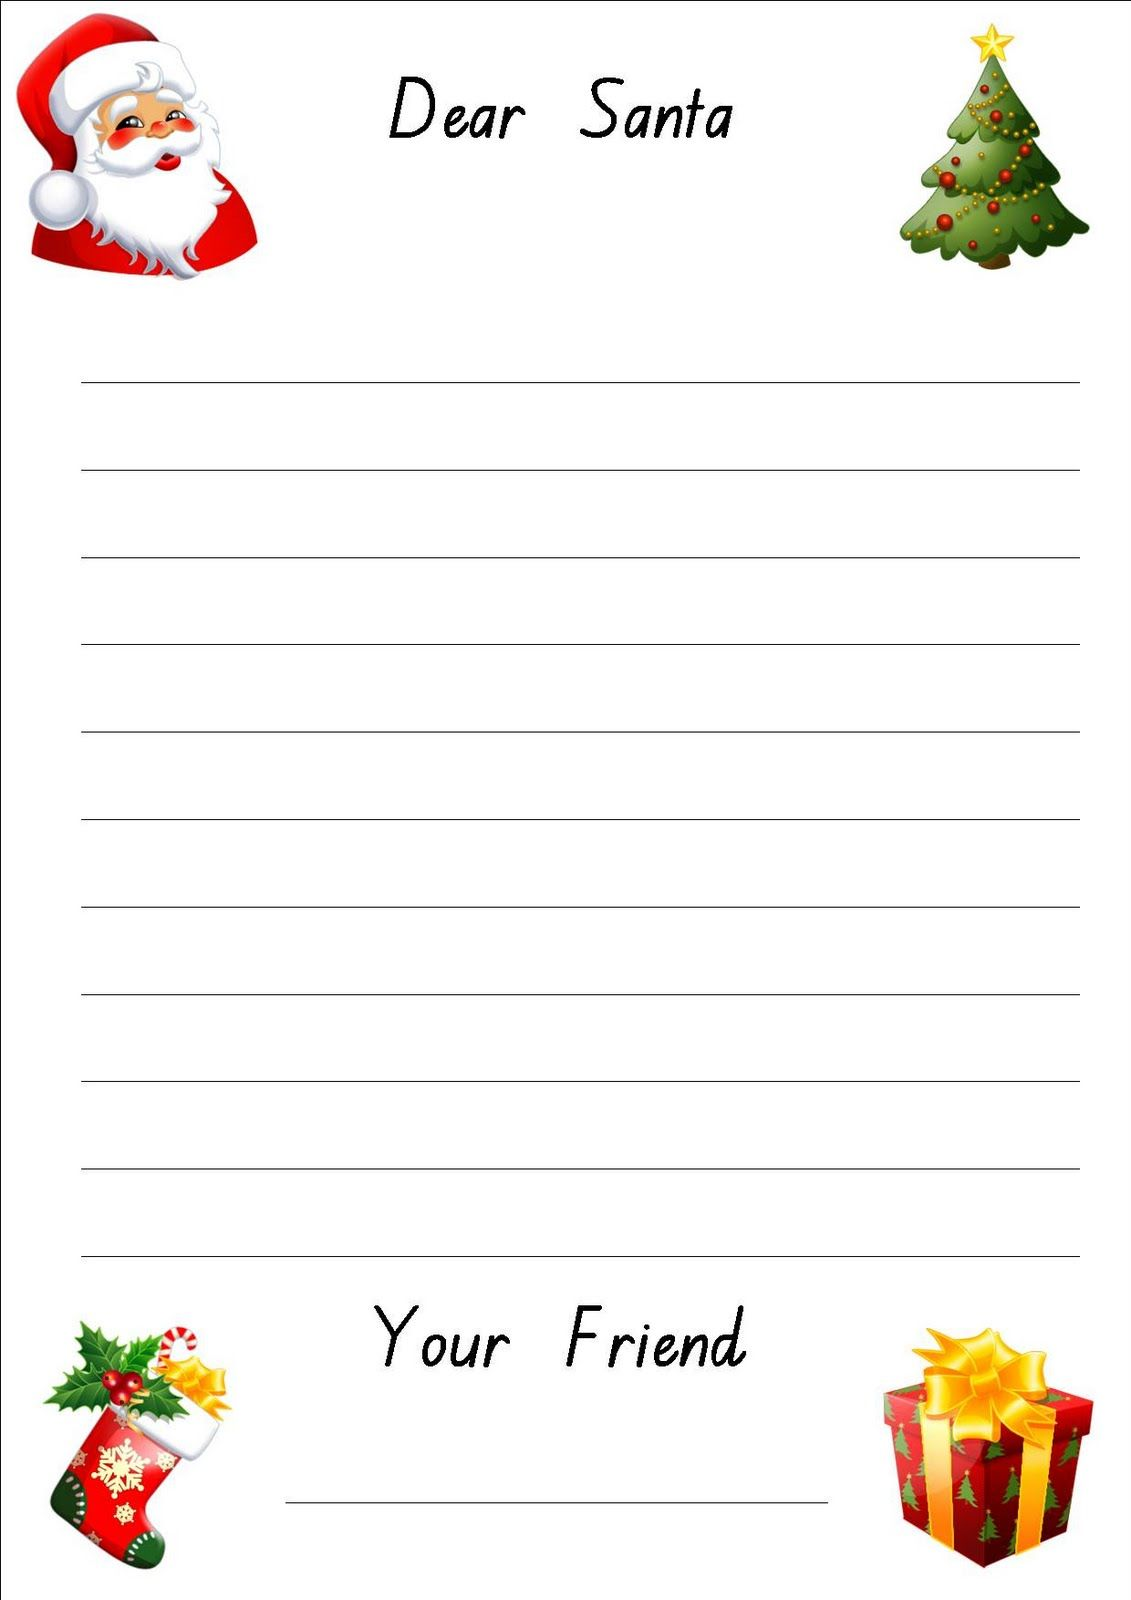 lined christmas paper for letters do your kids write letters to santa every year